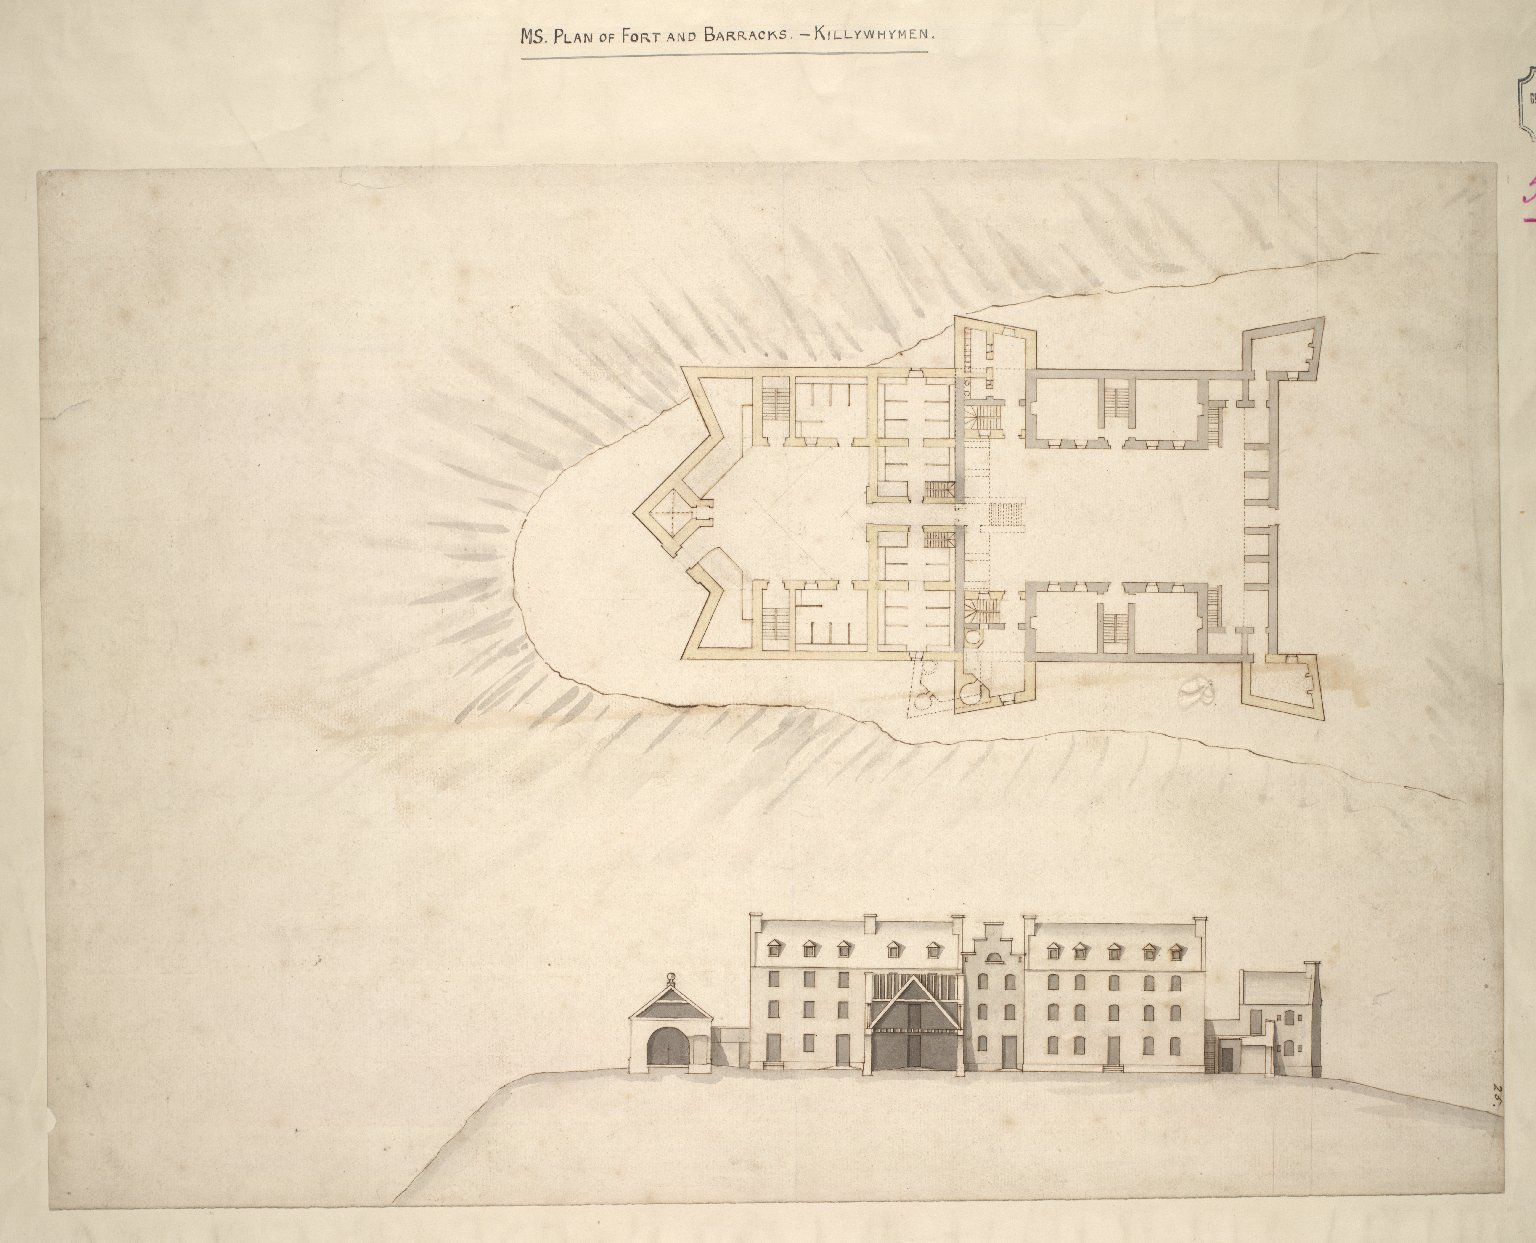 Plan of Fort and Barracks. - Killywhymen. [1 of 2]